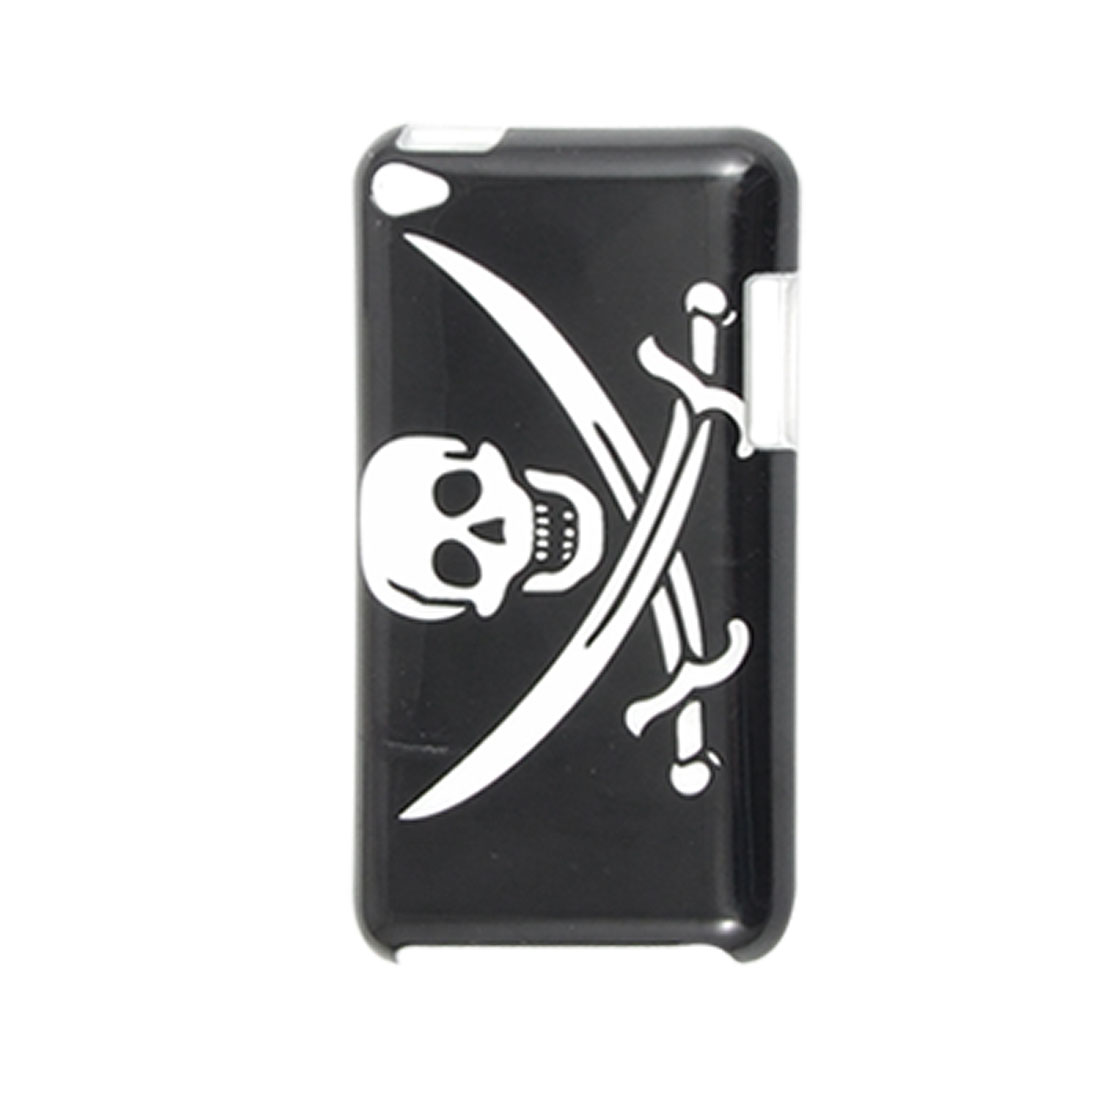 White IMD Skull Black Back Case Cover for iPod Touch 4G